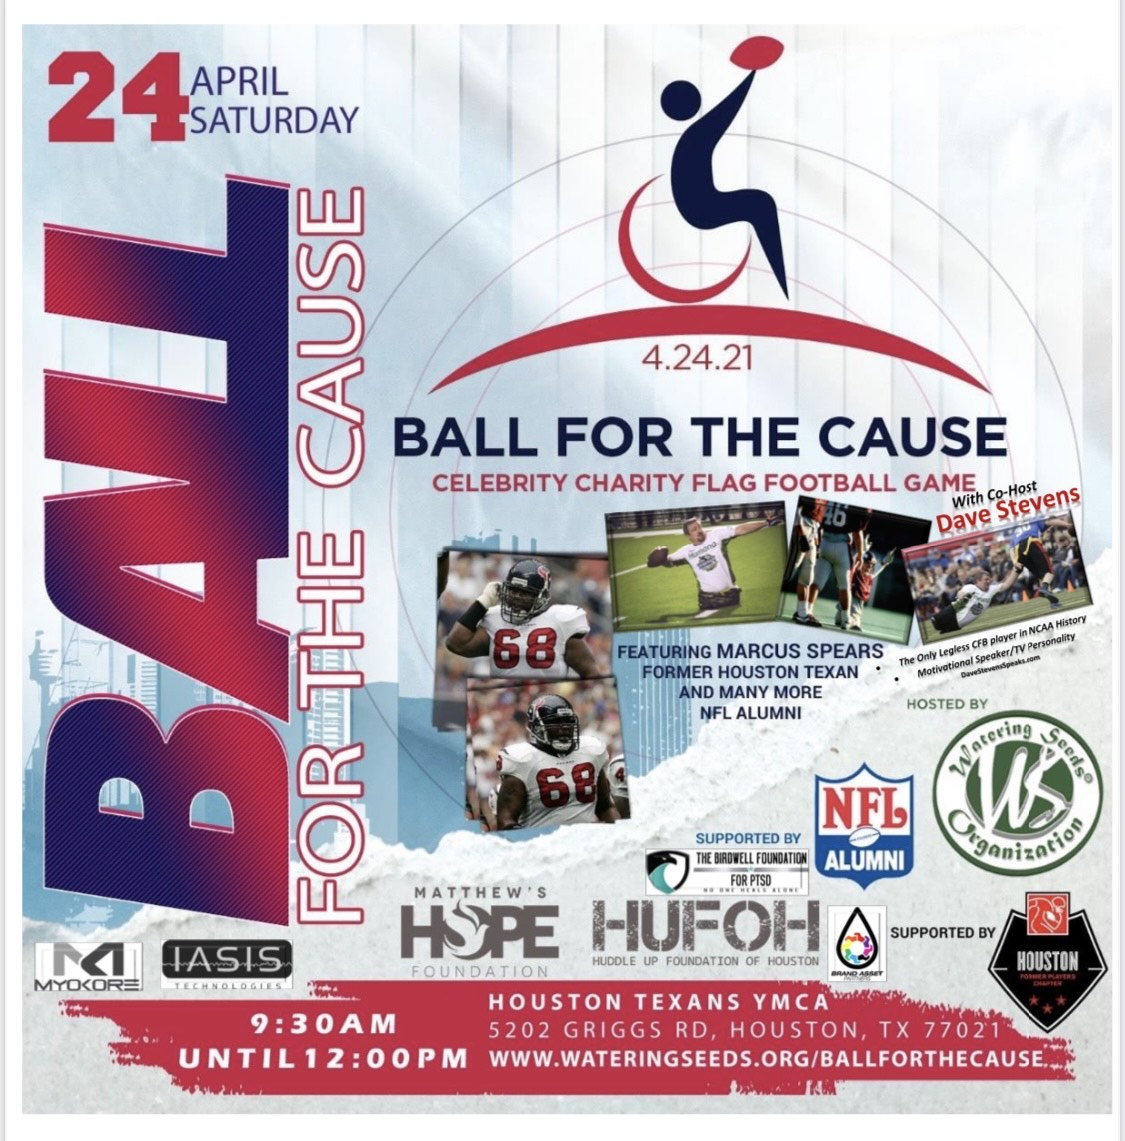 BALL FOR A CAUSE EVENT 2021